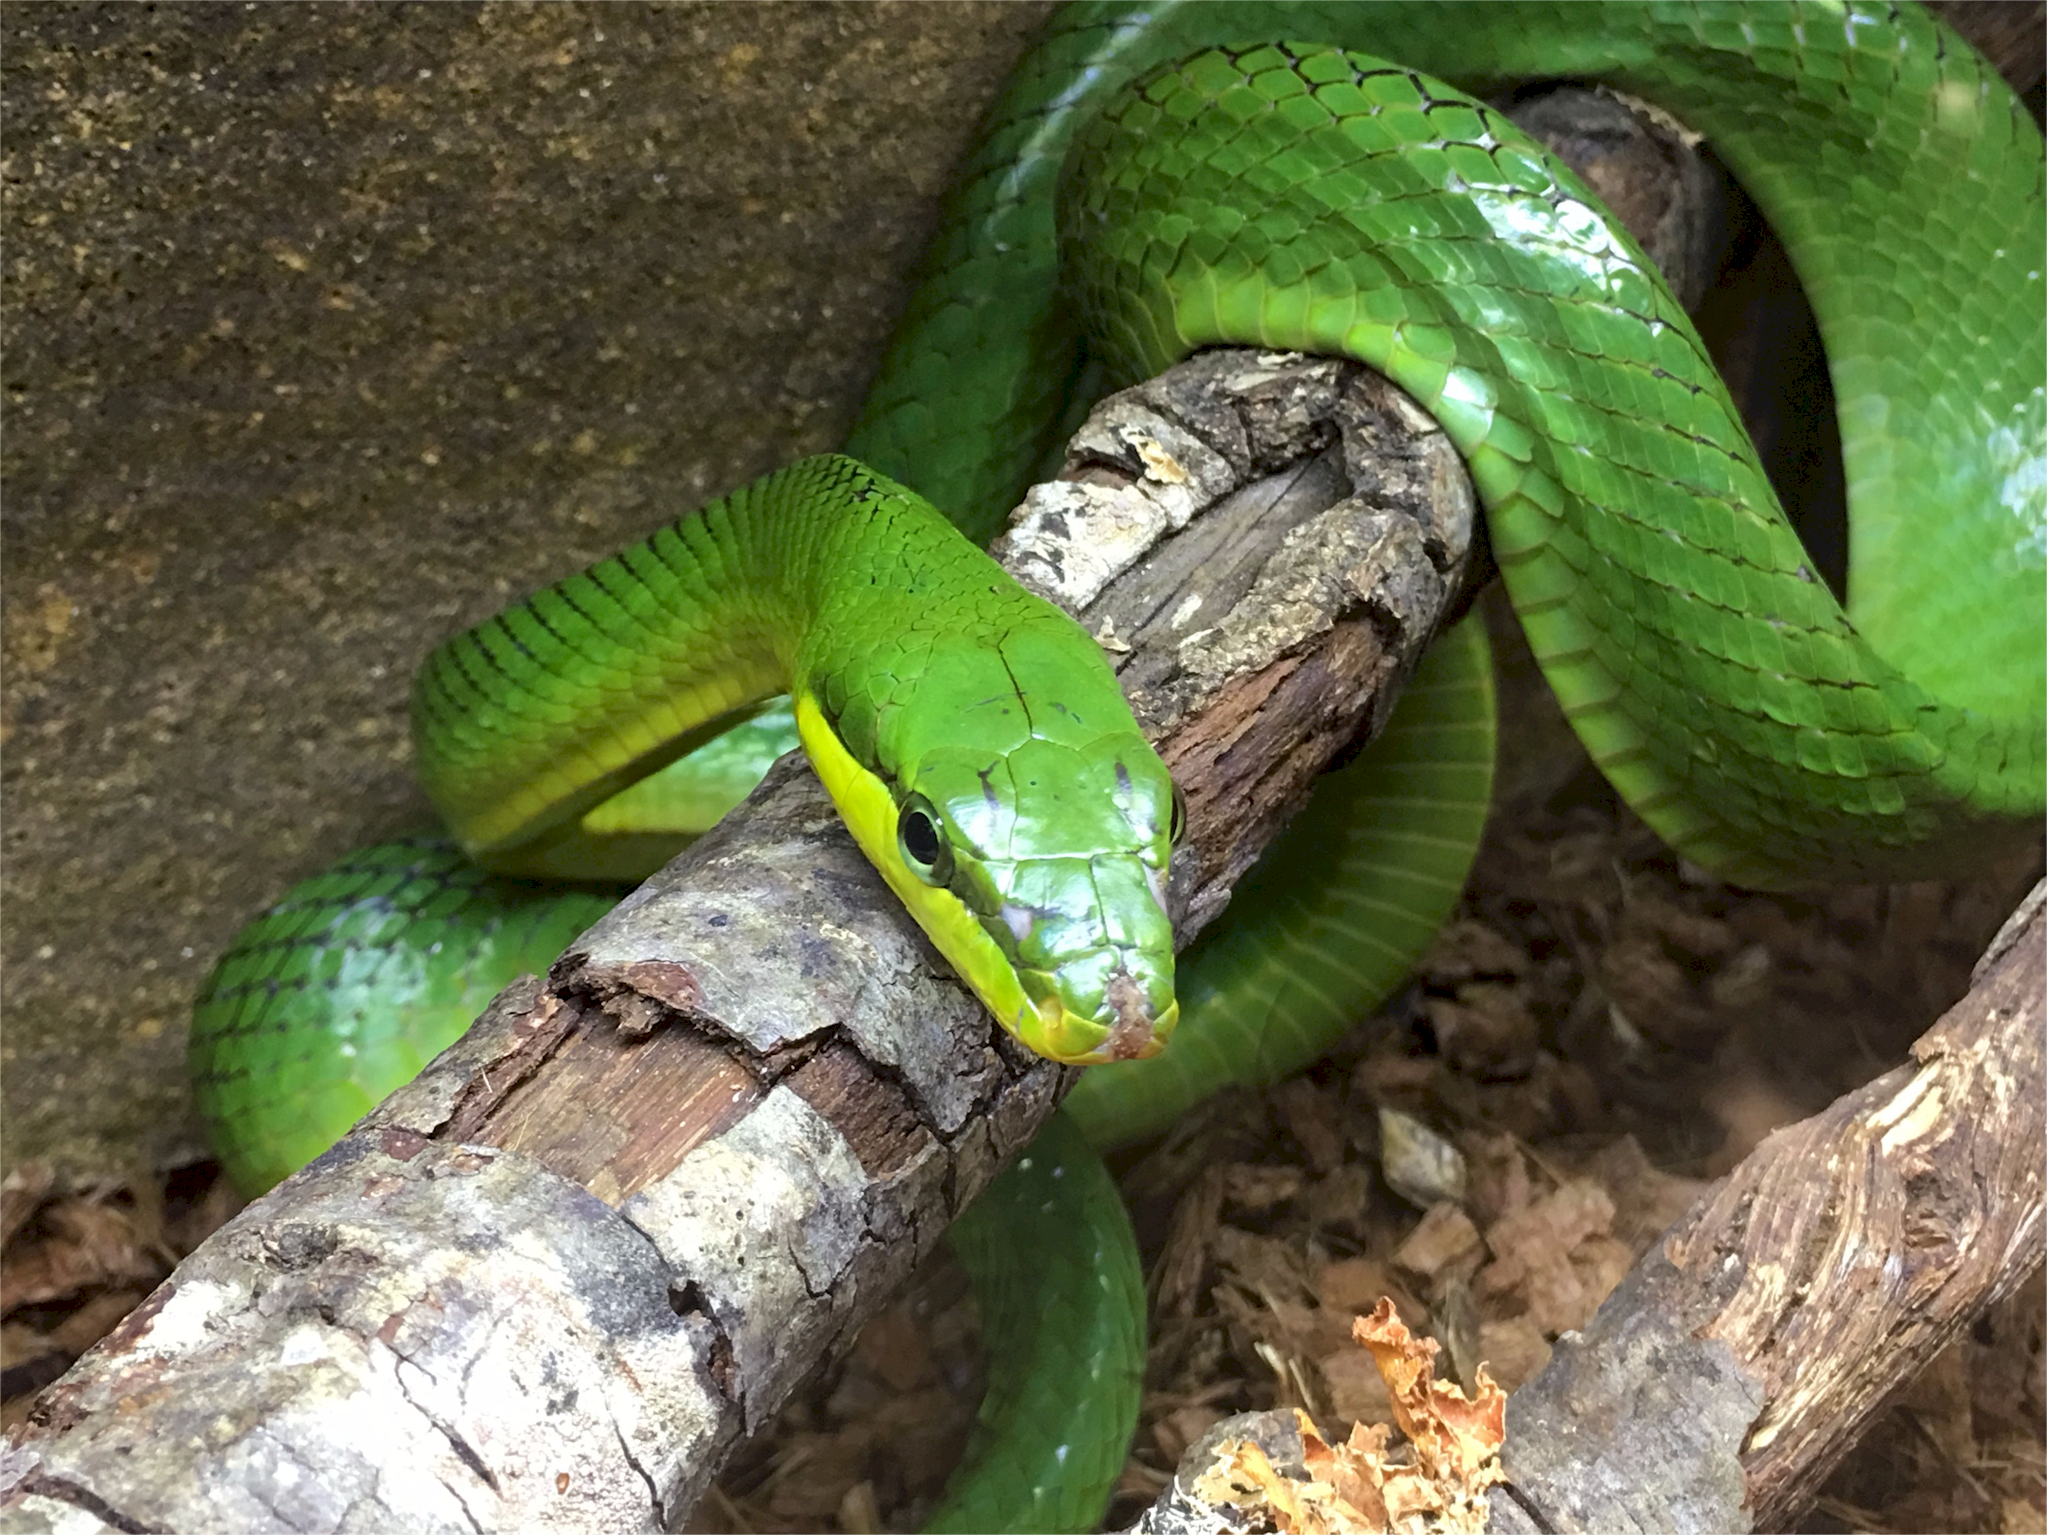 Looking for a new family pet, like a green python? Hundreds of reptiles, amphibians, spiders, small exotic animals and more will be at Repticon Baltimore on Sept. 29-30 at the Maryland State Fairgrounds in Timonium. Vendors, breeders and educators will be at the family-friendly expo, which will feature seminars, merchandise and live interactions with potential pets. The expo runs from 10 a.m. to 5 p.m. Saturday and 10 a.m. to 4 p.m. Sunday. Tickets are $10 for adults, $5 for kids 5-12 and under 5 are free. Visit repticon.com/maryland/baltimore for more.